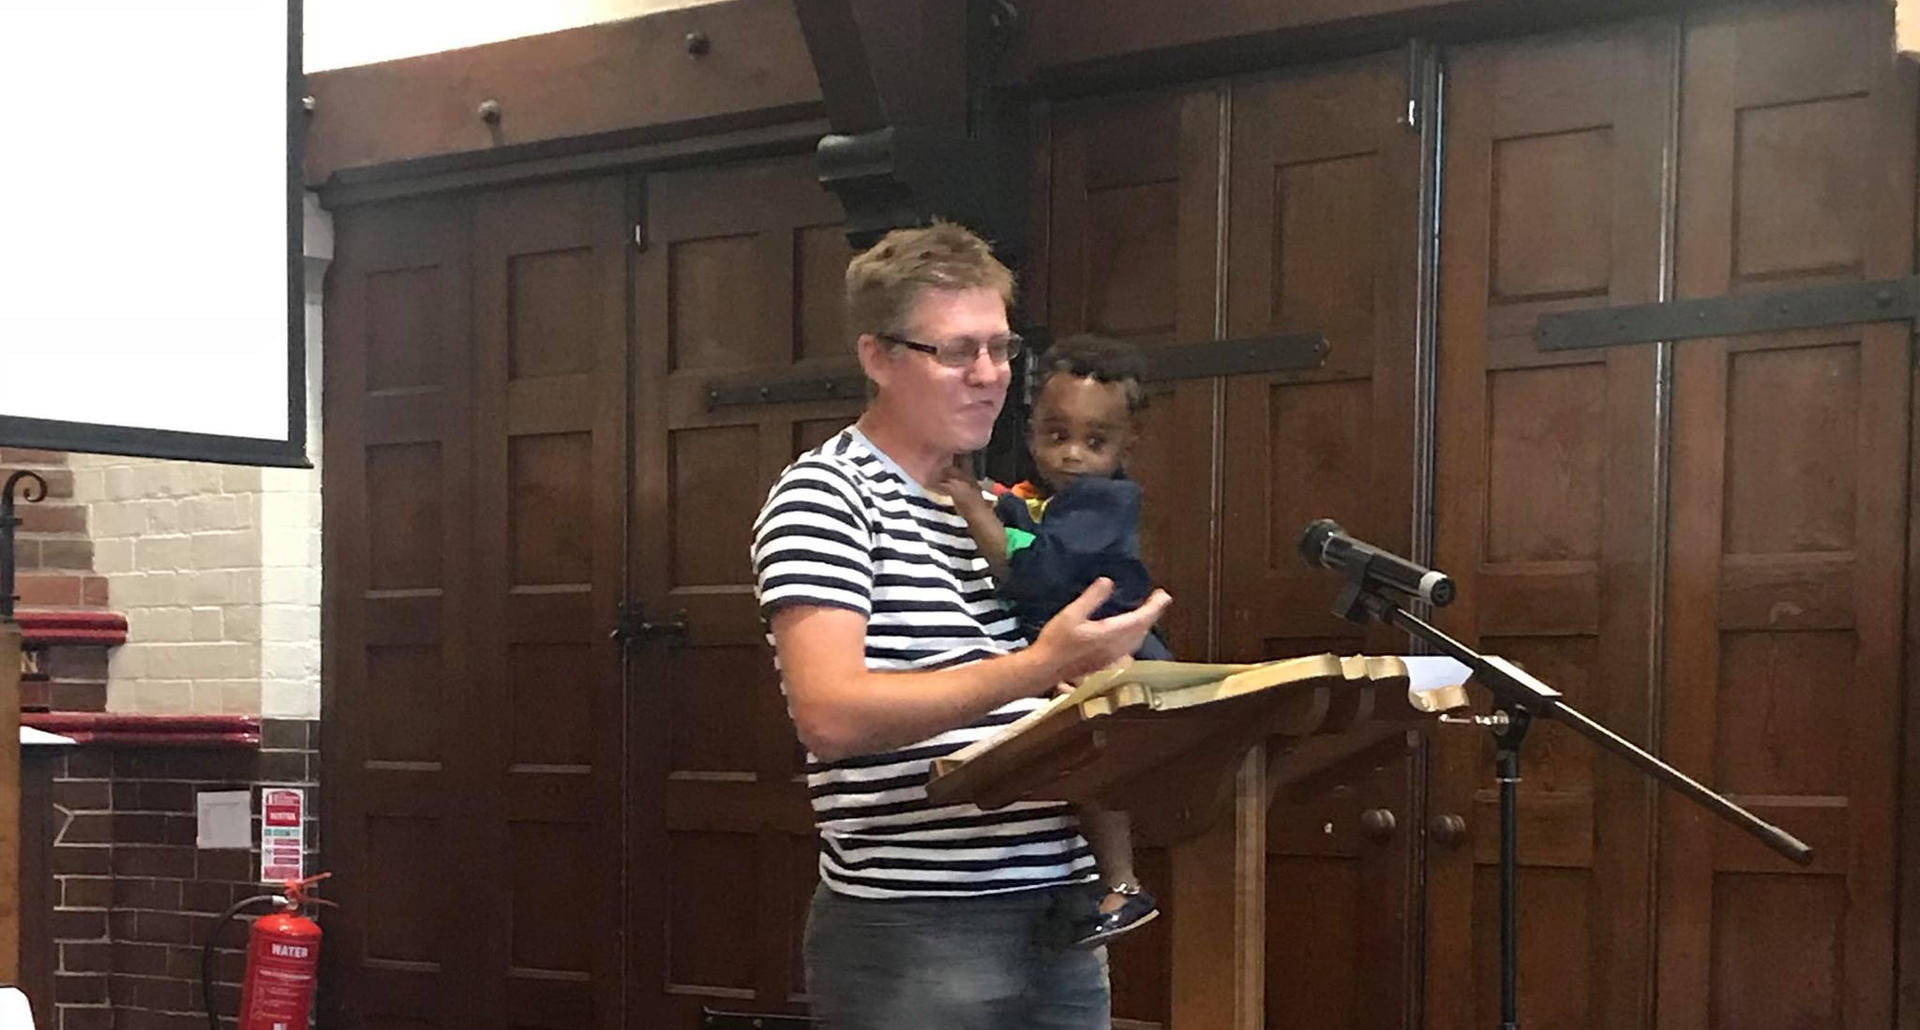 Helping with a sermon